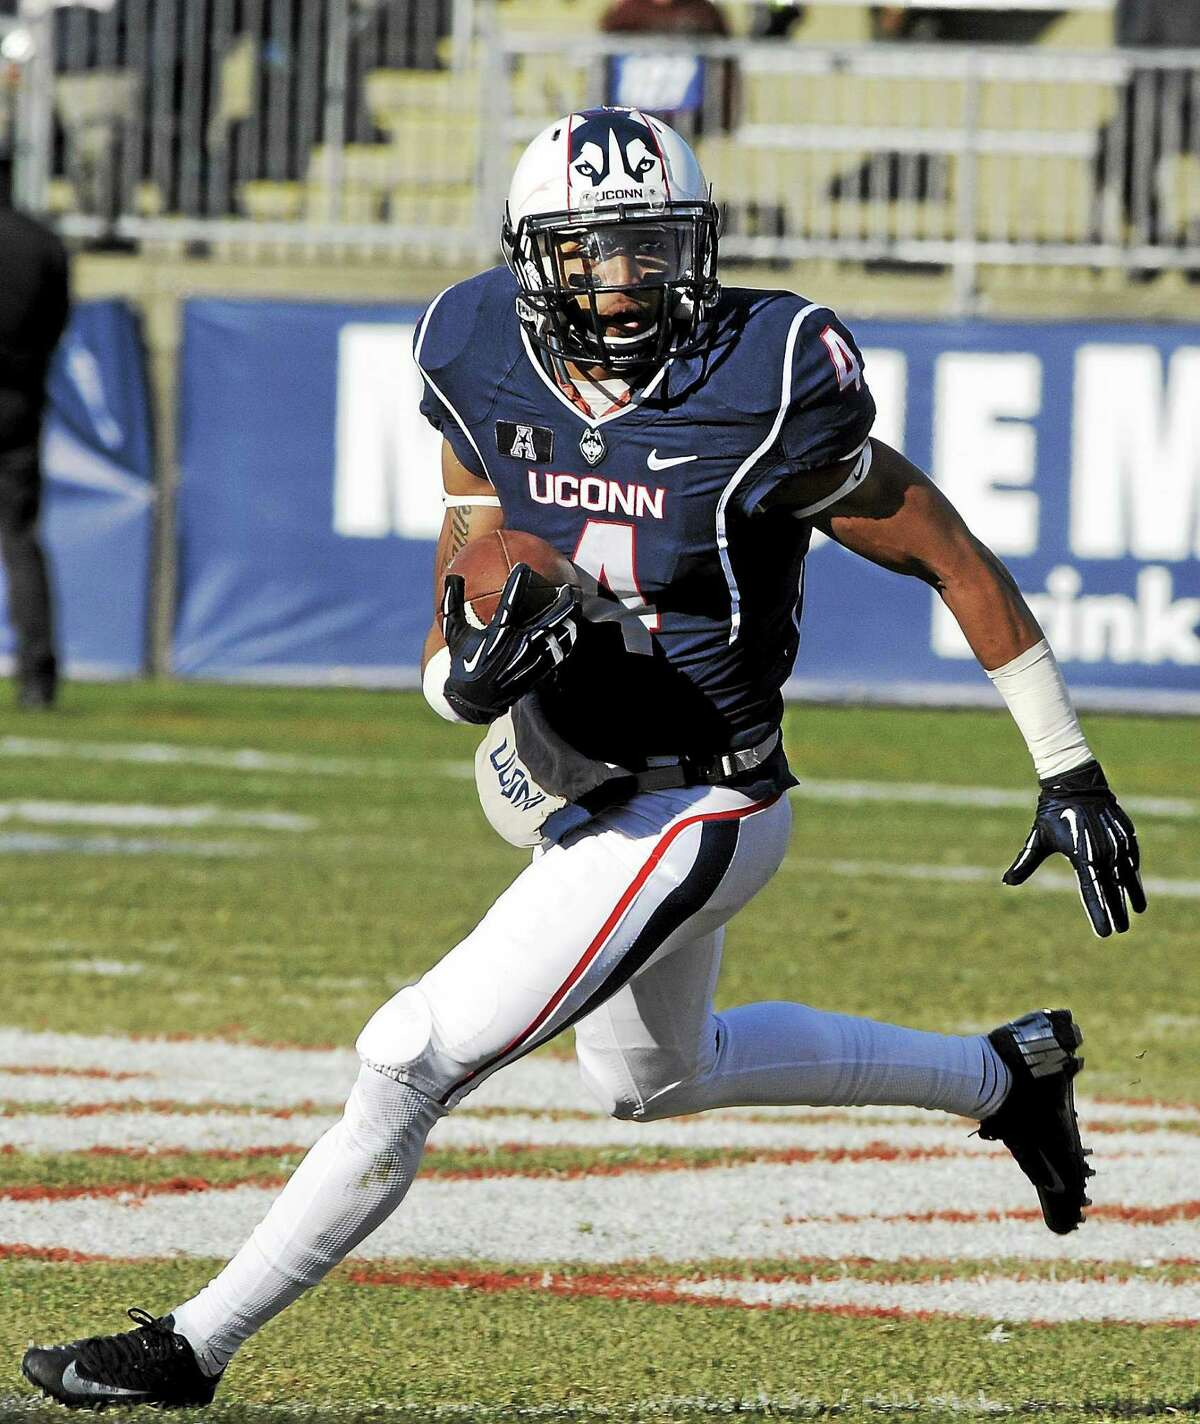 UConn wide receiver Deshon Foxx got some time at quarterback in Saturday's loss to Temple.